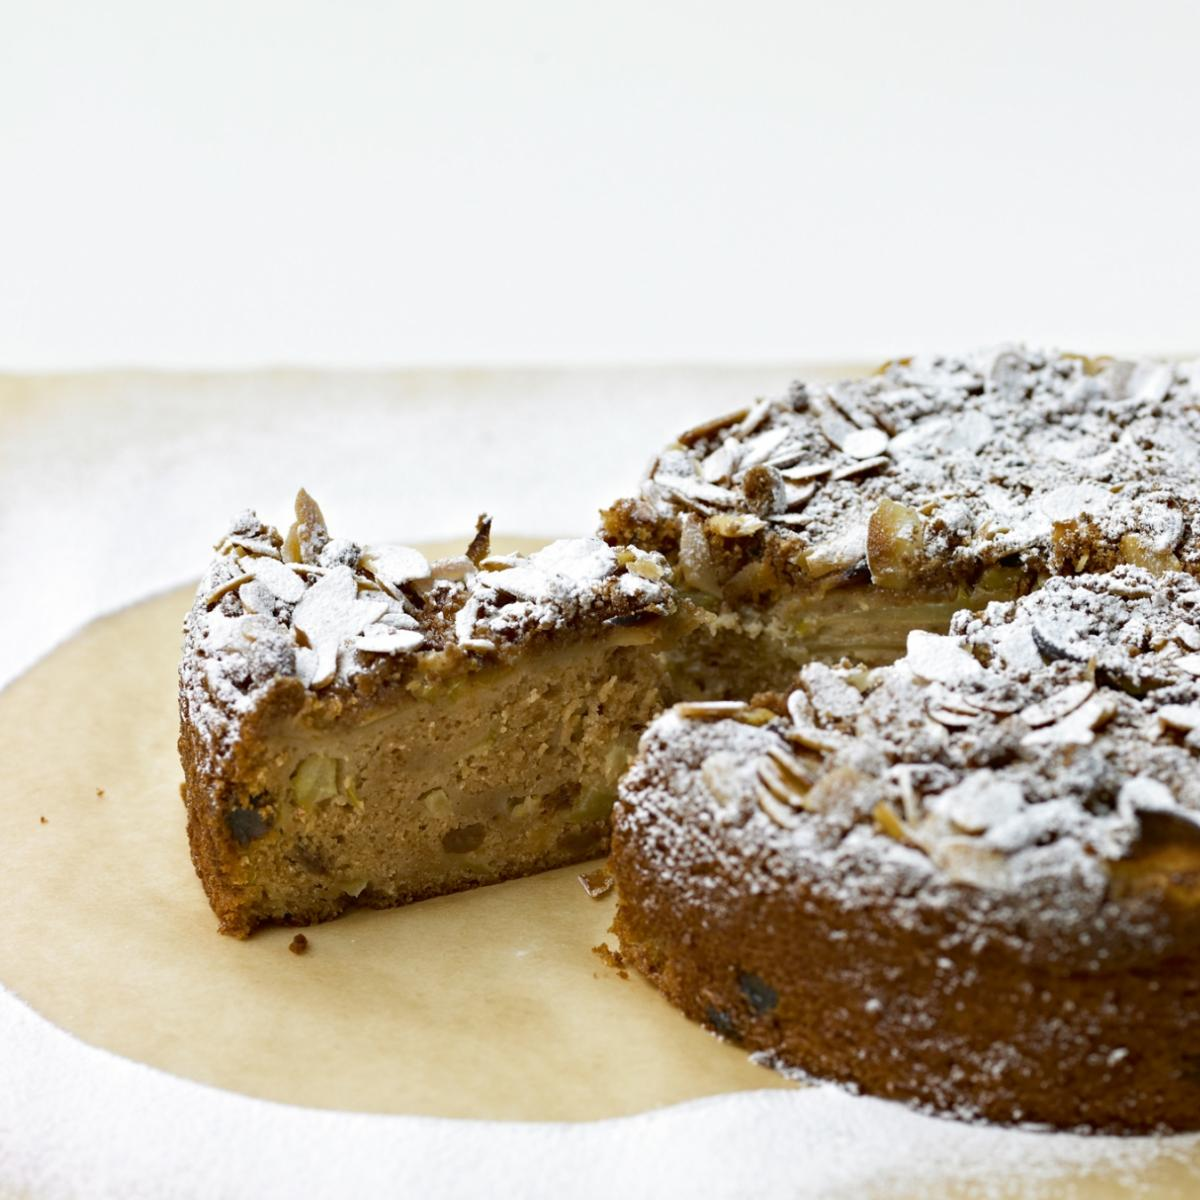 A picture of Delia's Spiced Apple and Cider Cake recipe